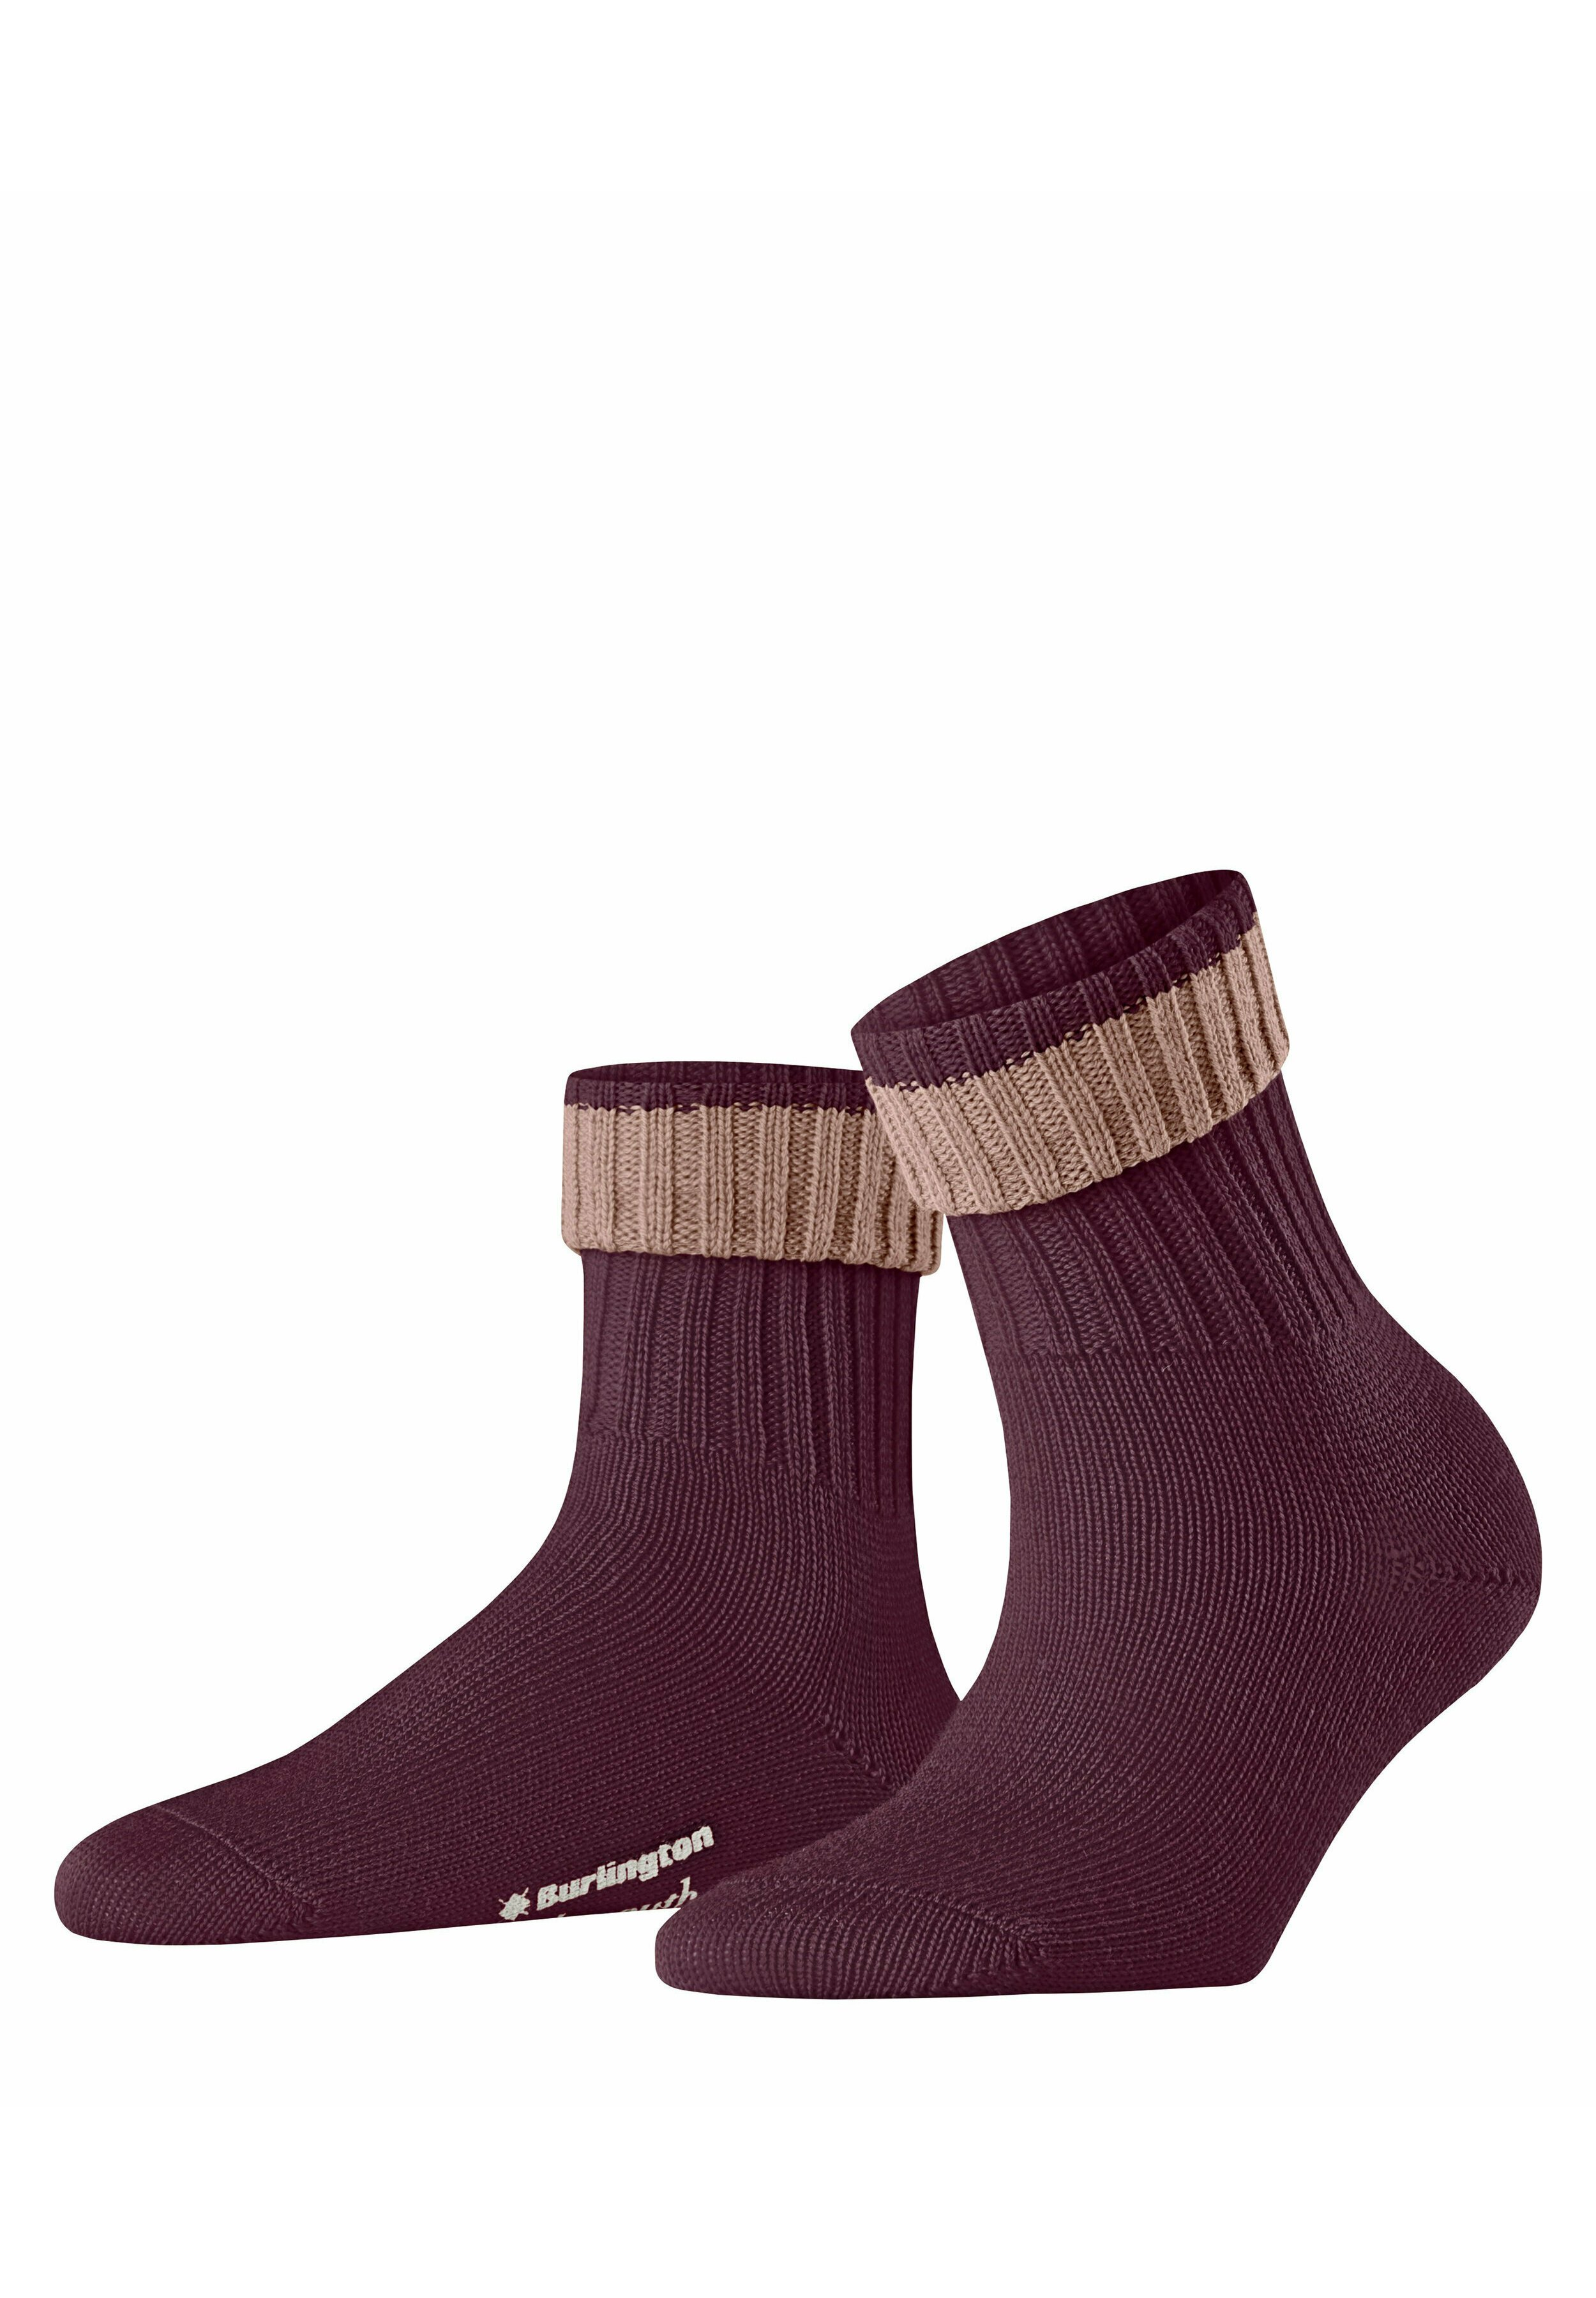 Femme PLYMOUTH - Chaussettes